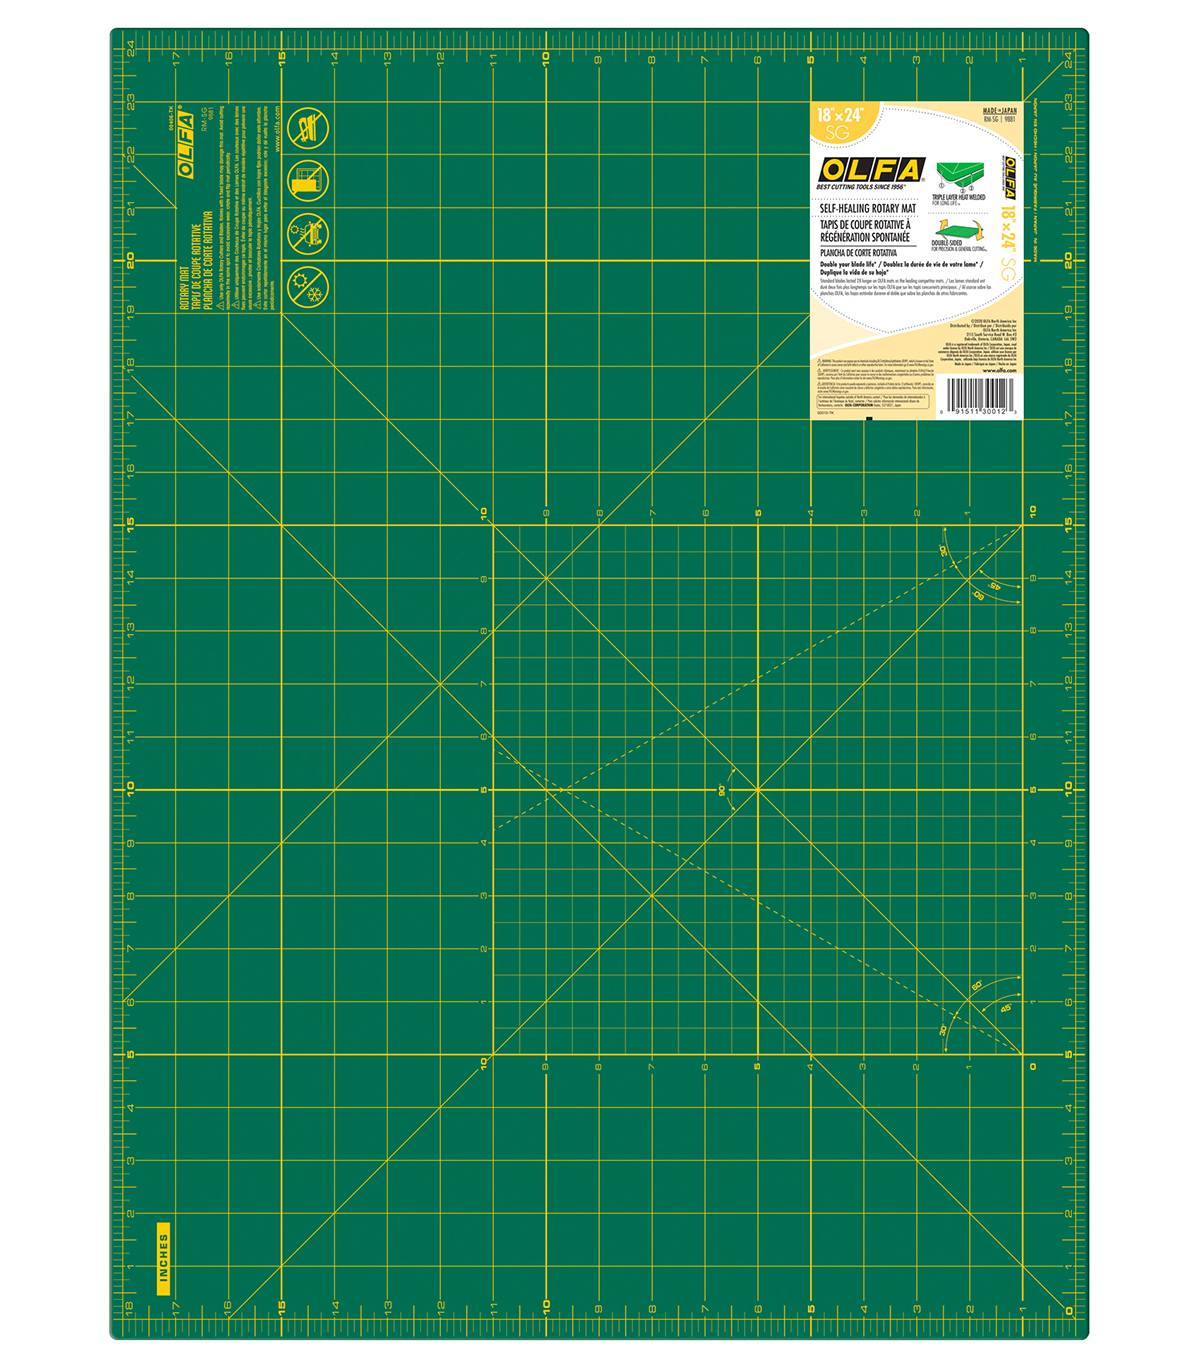 essential mats sewing products graphics vital tools chicago mat for cutting in custom window signs and usa